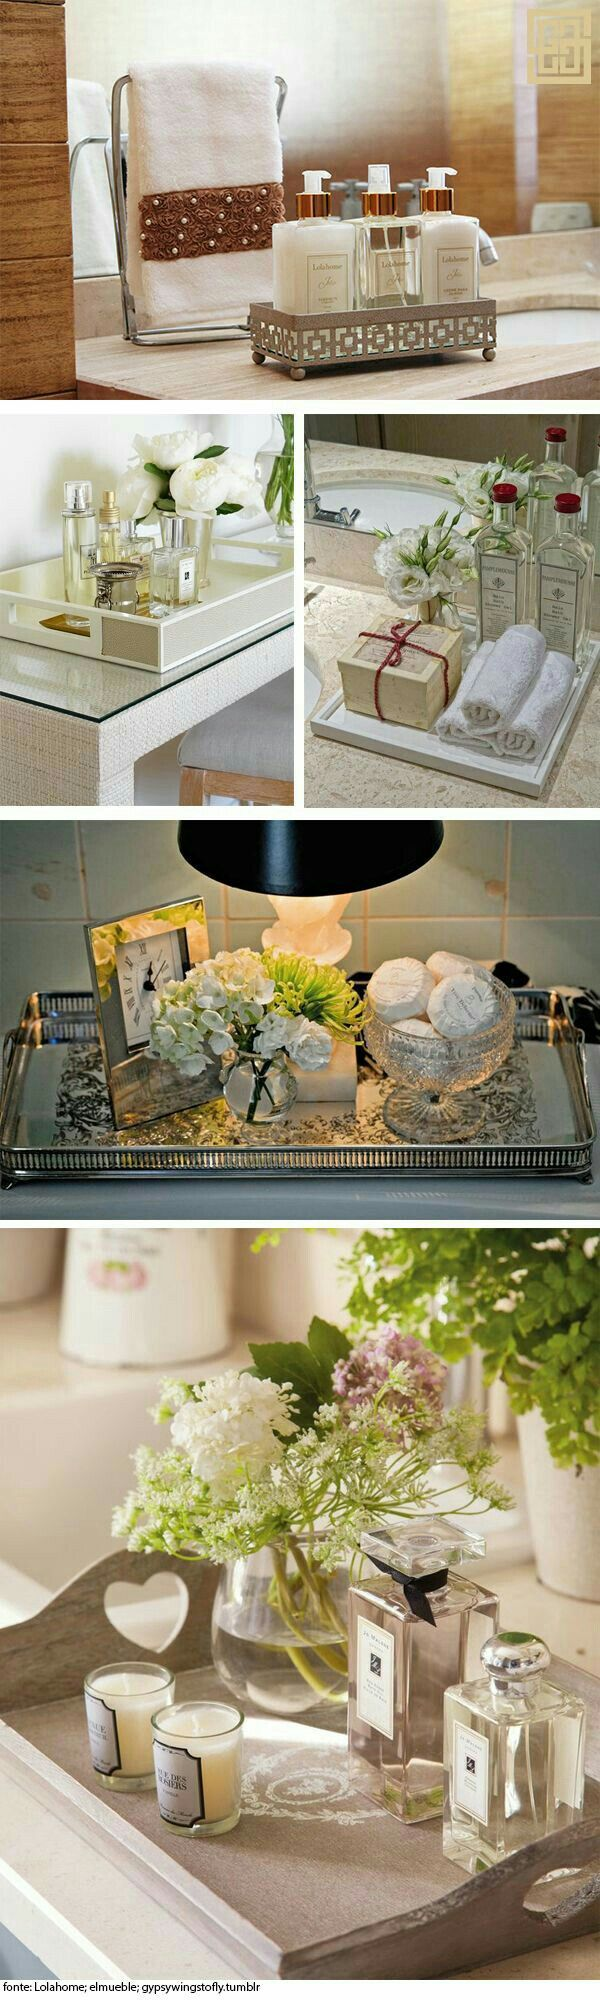 Bathroom flowers decor - Items Necessary For Only The Most Luxurious Bathroom